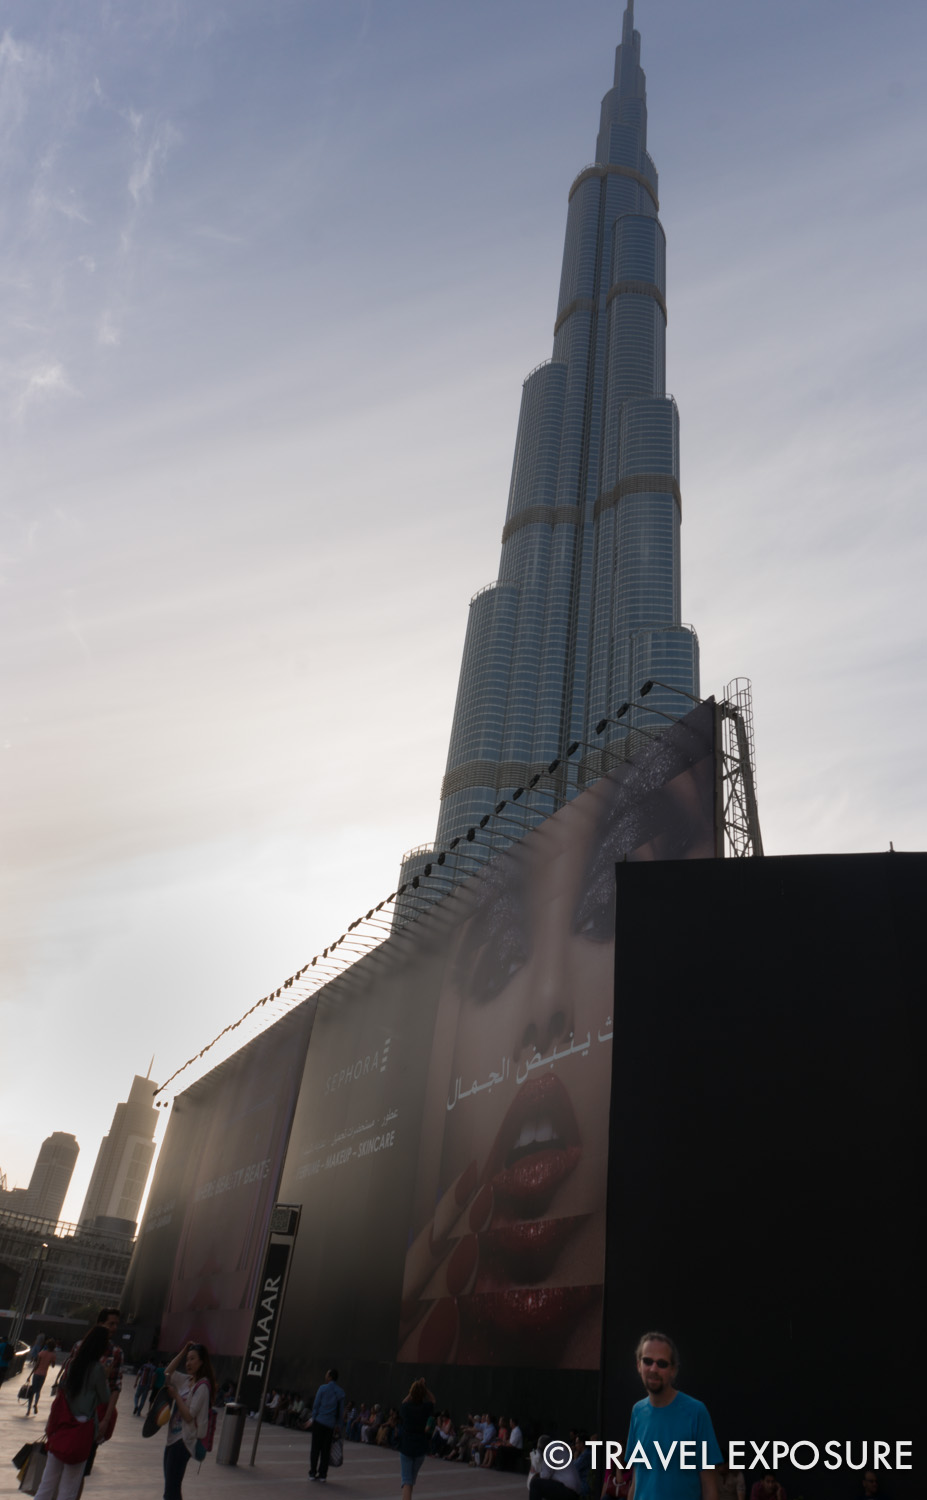 Root stands by the Burj Khalifa, the tallest building in the world, in Dubai.